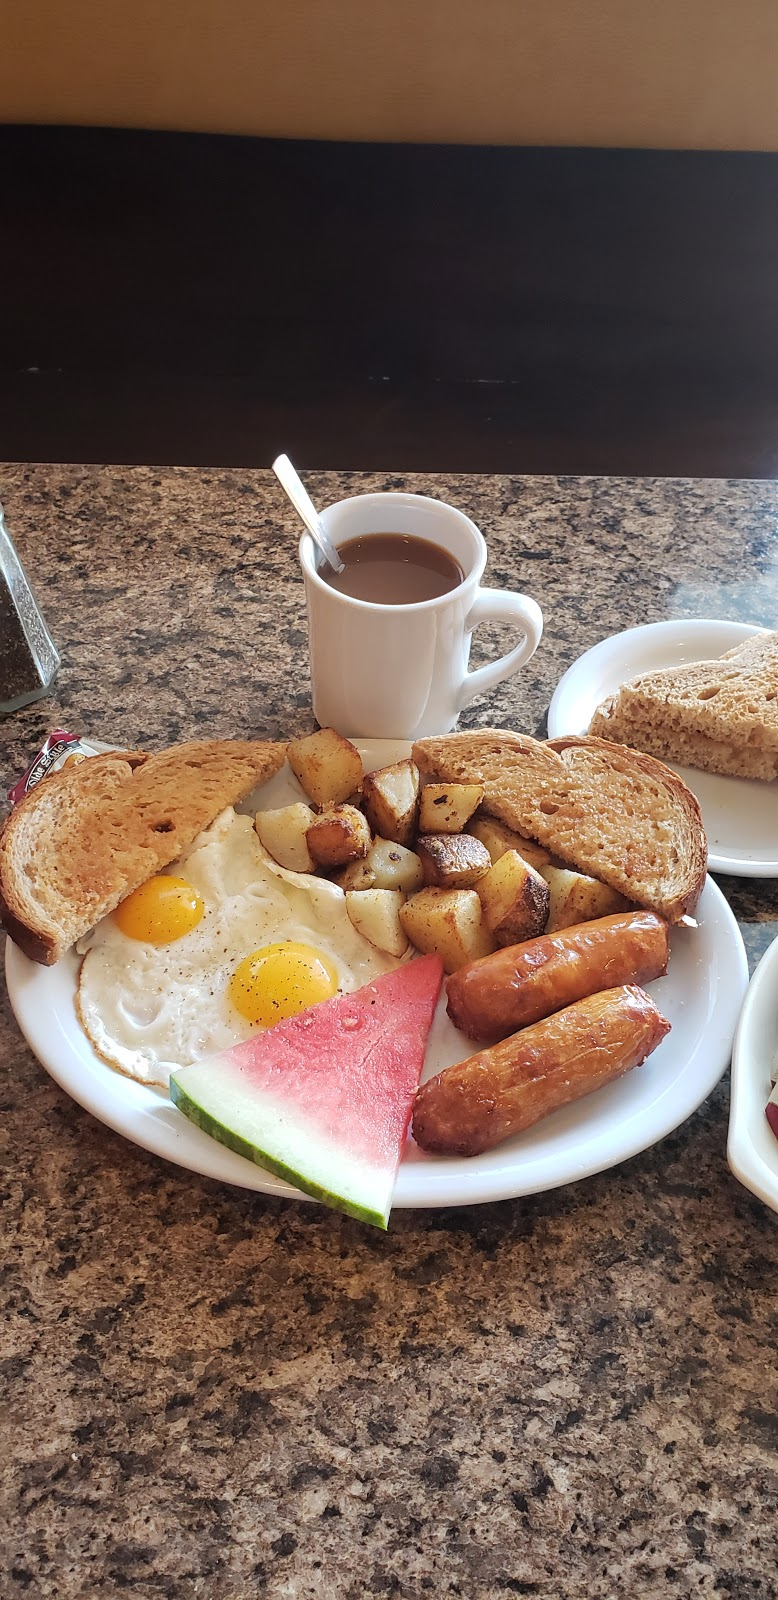 Cosys Diner   restaurant   500 Rossland Rd W #6, Oshawa, ON L1J 3H2, Canada   2892409133 OR +1 289-240-9133